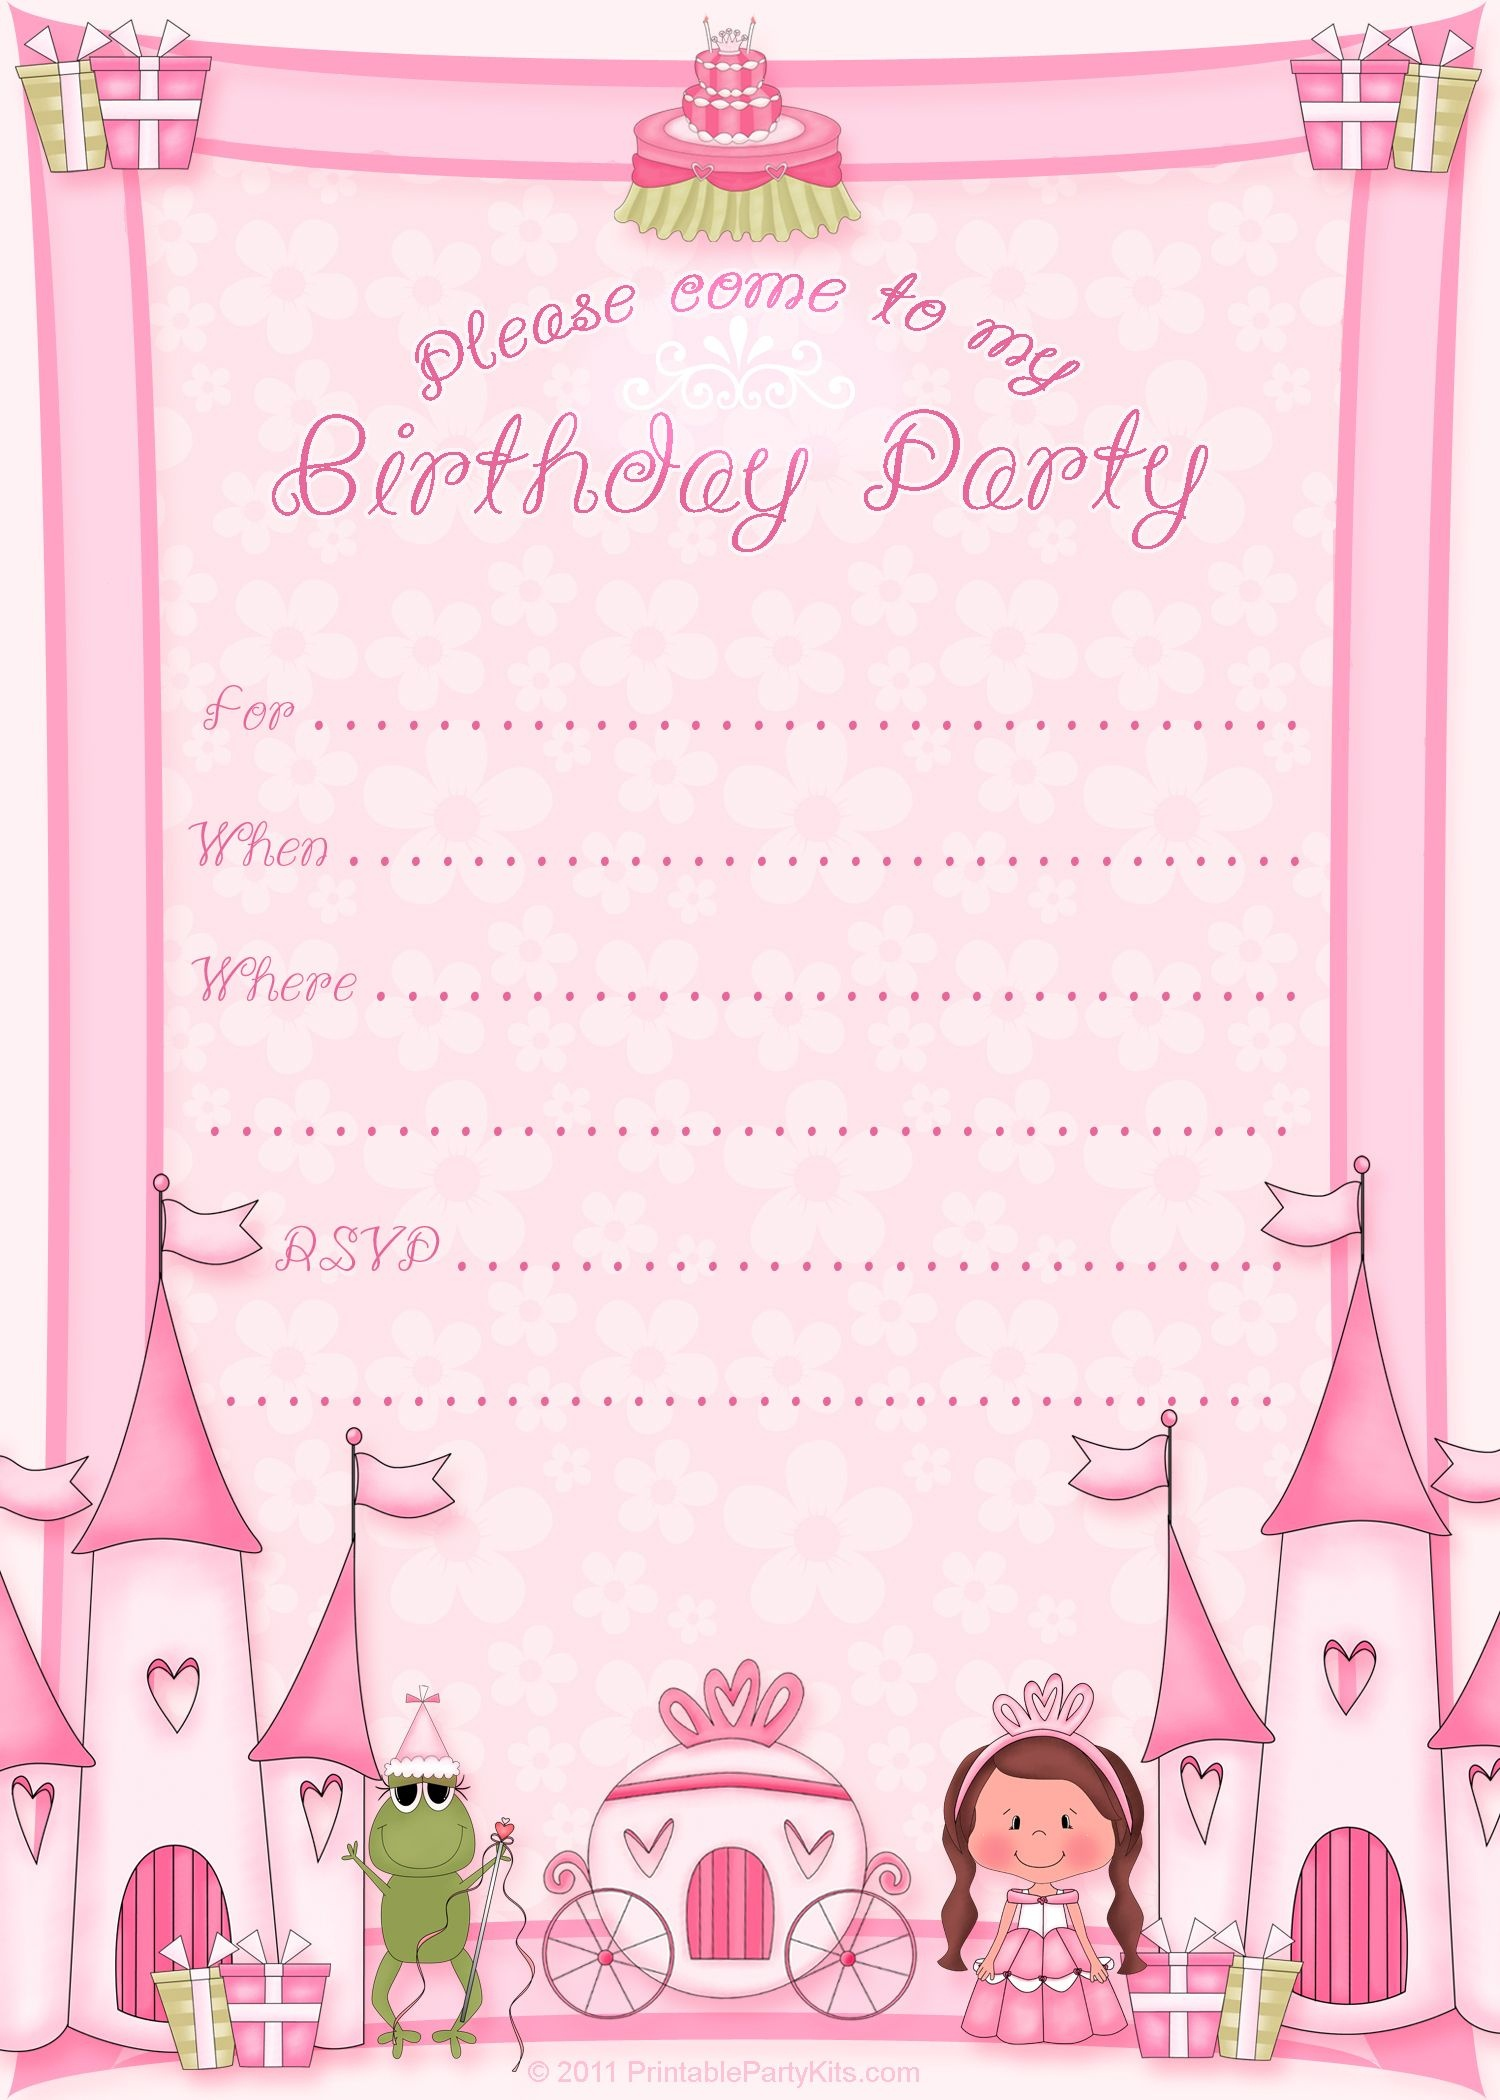 Free Printable Invitation. Pinned For Kidfolio, The Parenting Mobile - Free Printable Personalized Birthday Invitation Cards